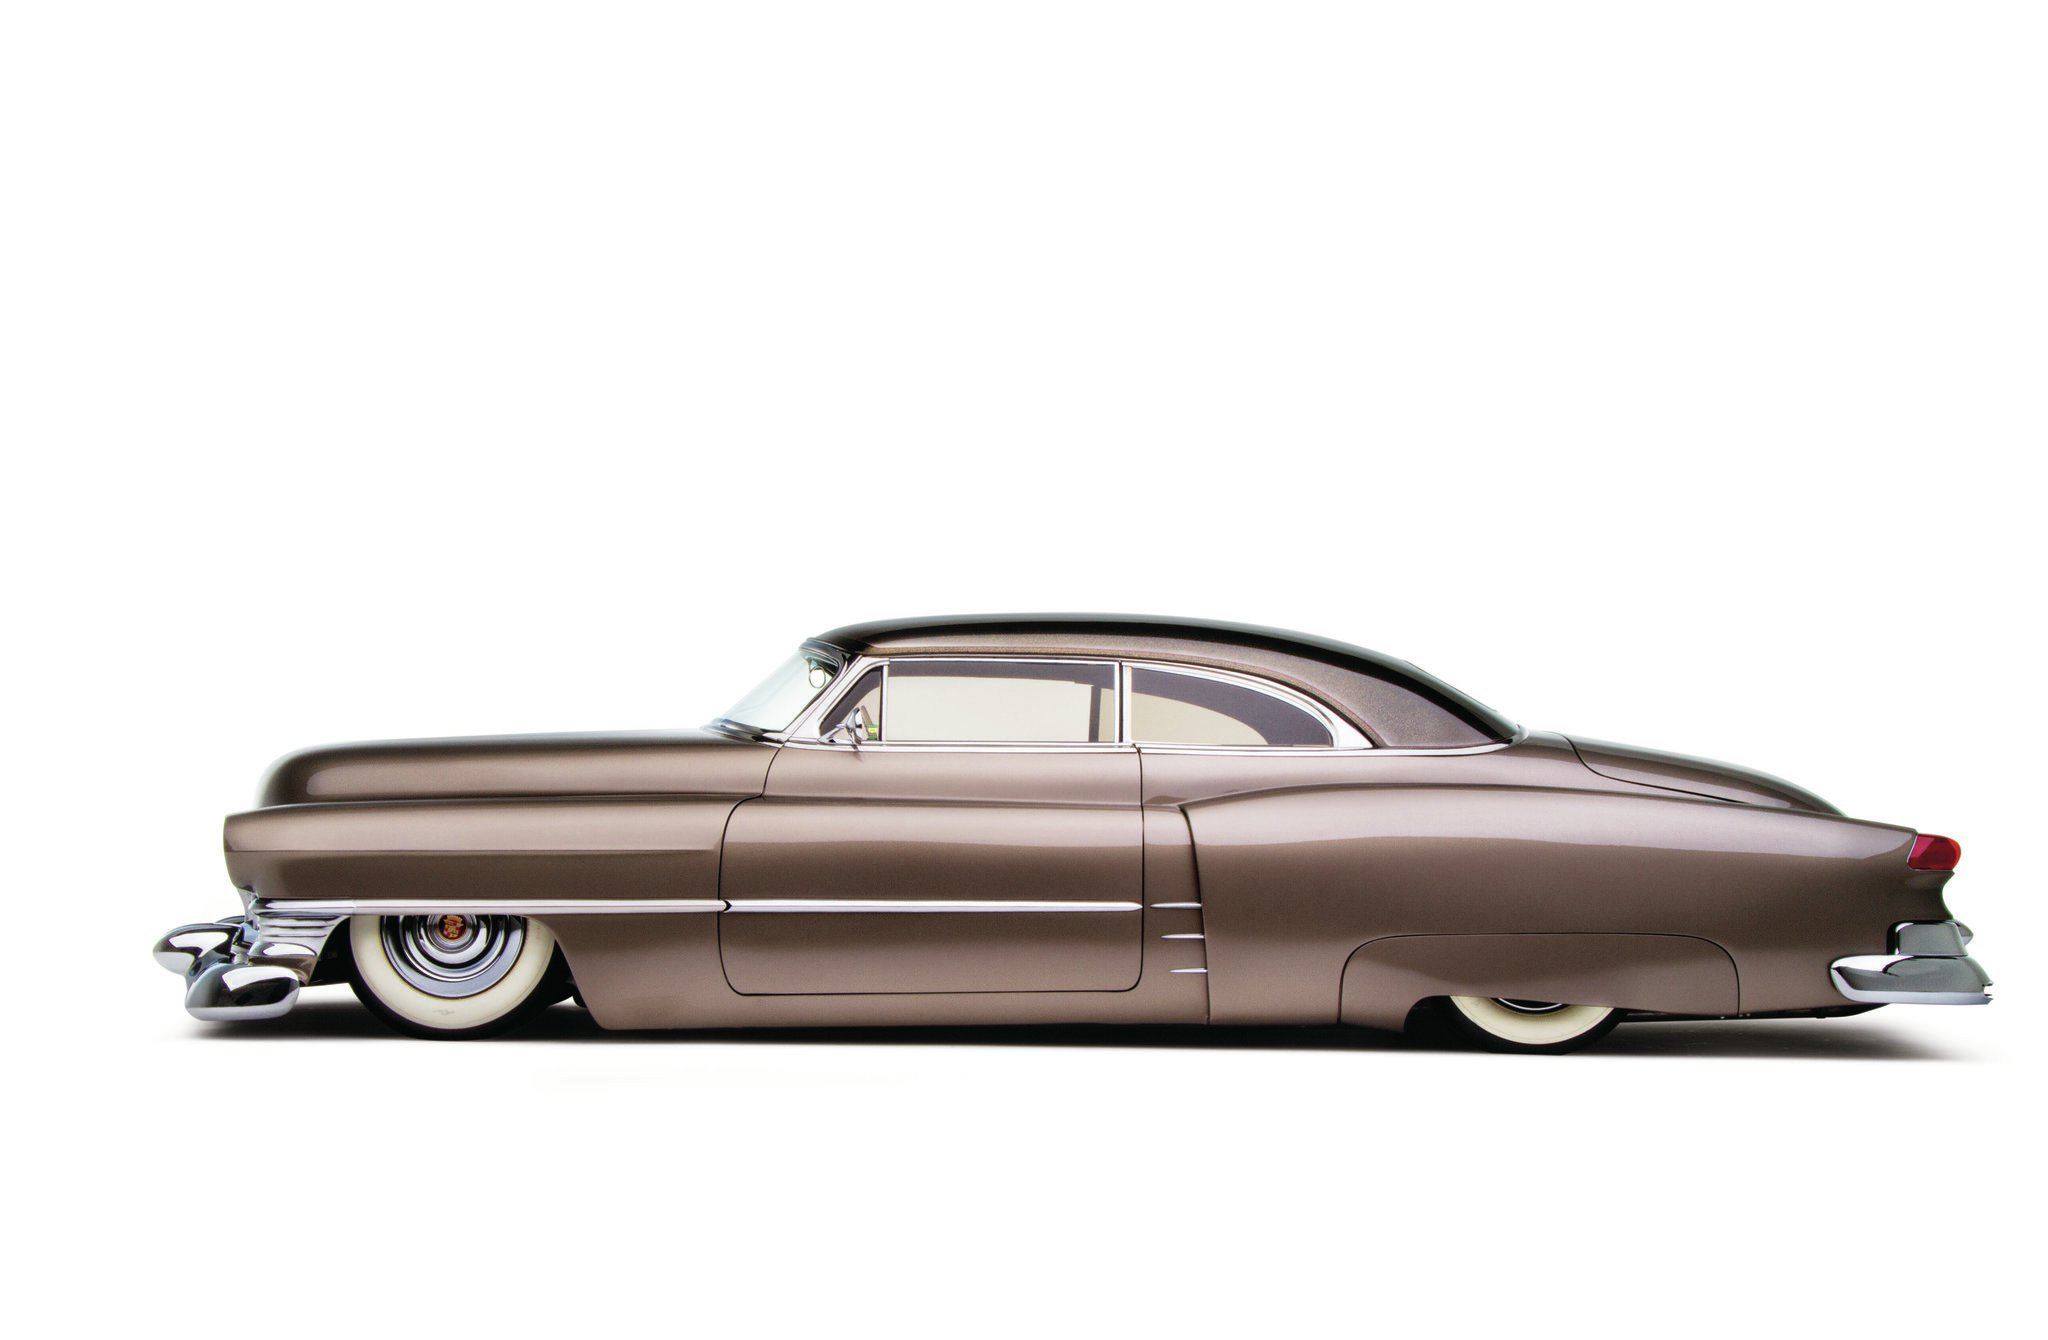 """In profile, you can see the subtle chopped top, extra chrome accents coming out of the stepped rear fenders, and how the '54 Clipper """"sore thumb"""" taillights blend well with the fenders. The skirts are also modified to reveal more of the gangster tires."""